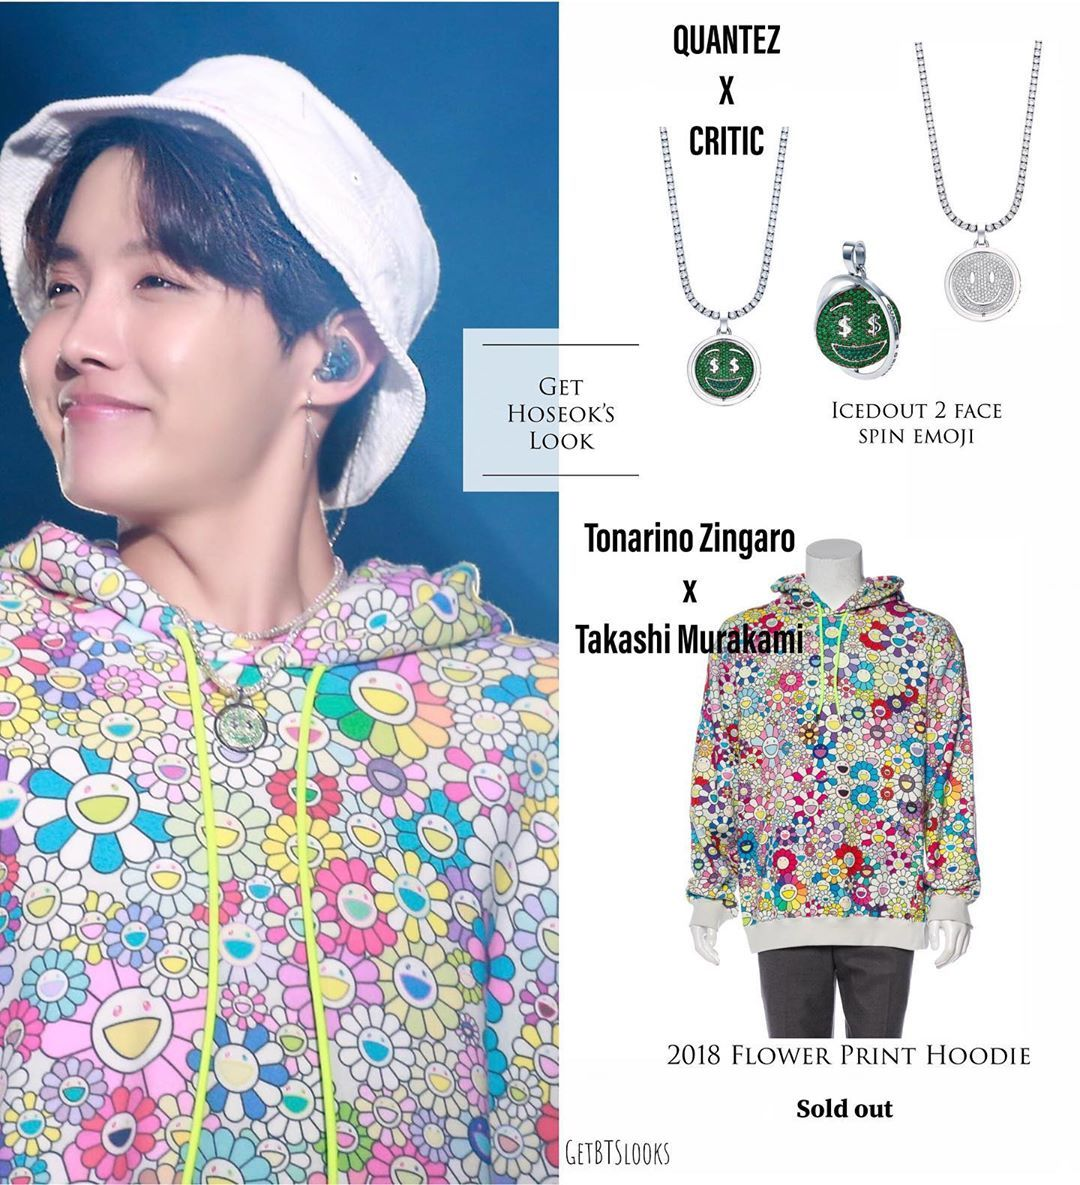 Bts Looks Outfits Di Instagram Hoseok 5th Muster Wearing Quanteztothenextlevel X Critic Wear Bts Inspired Outfits Flower Print Hoodie Bts Clothing